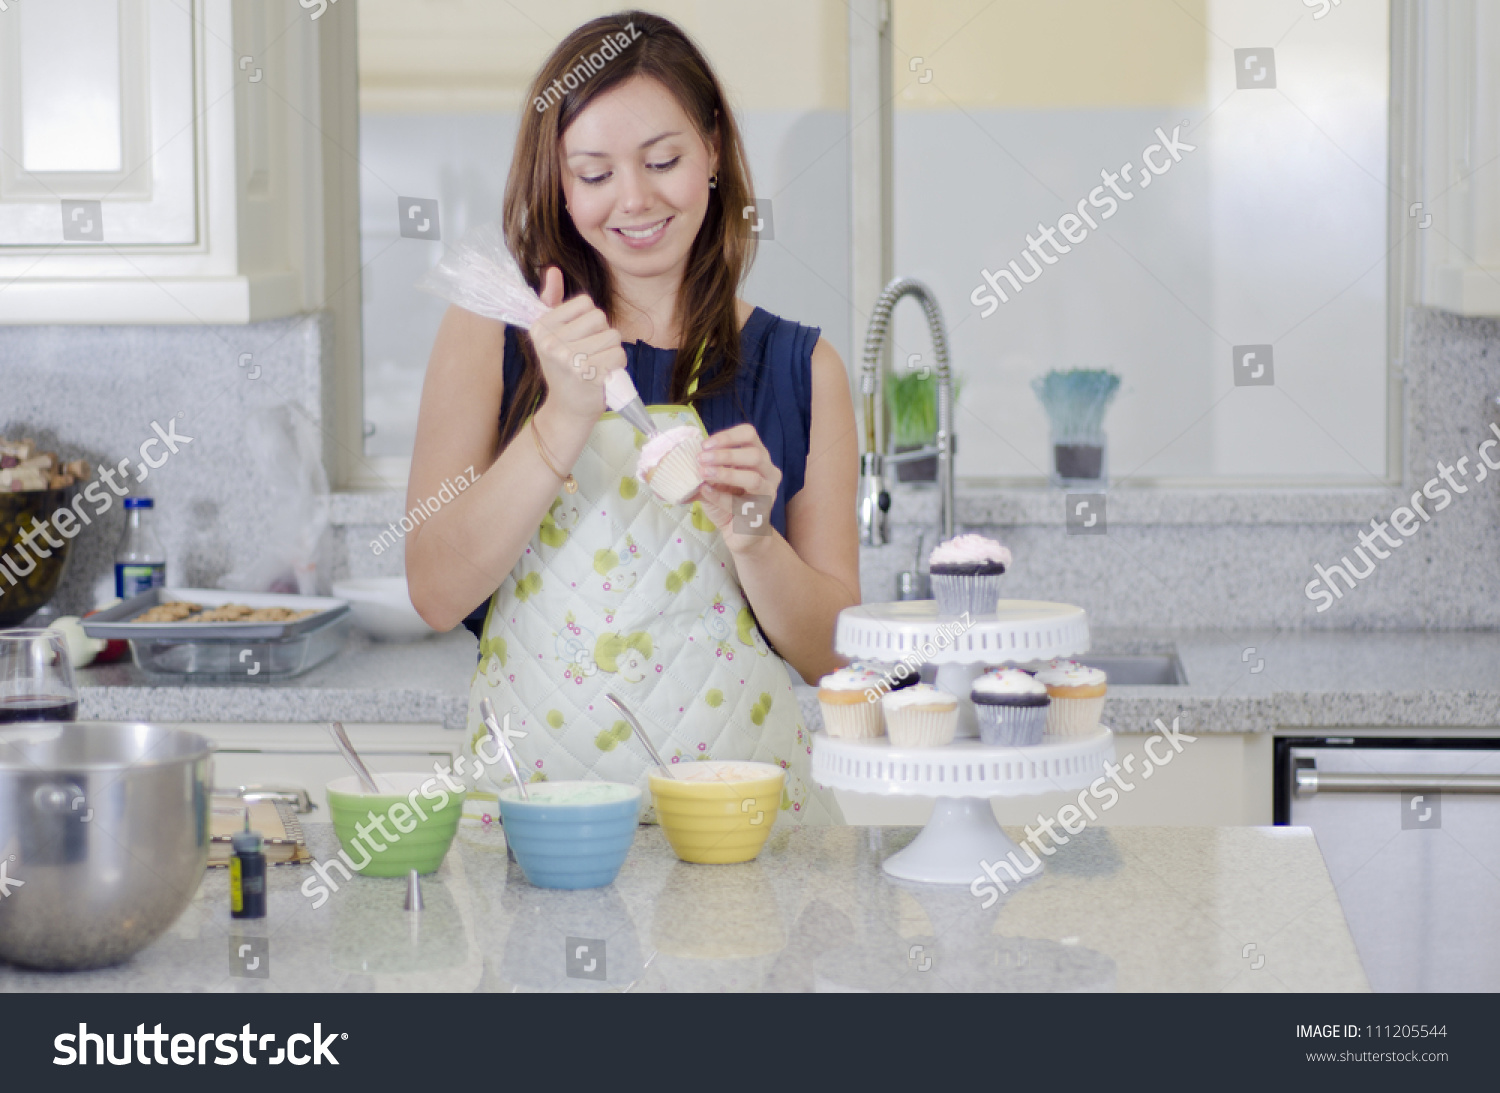 Cute Young Woman Decorating Cupcakes